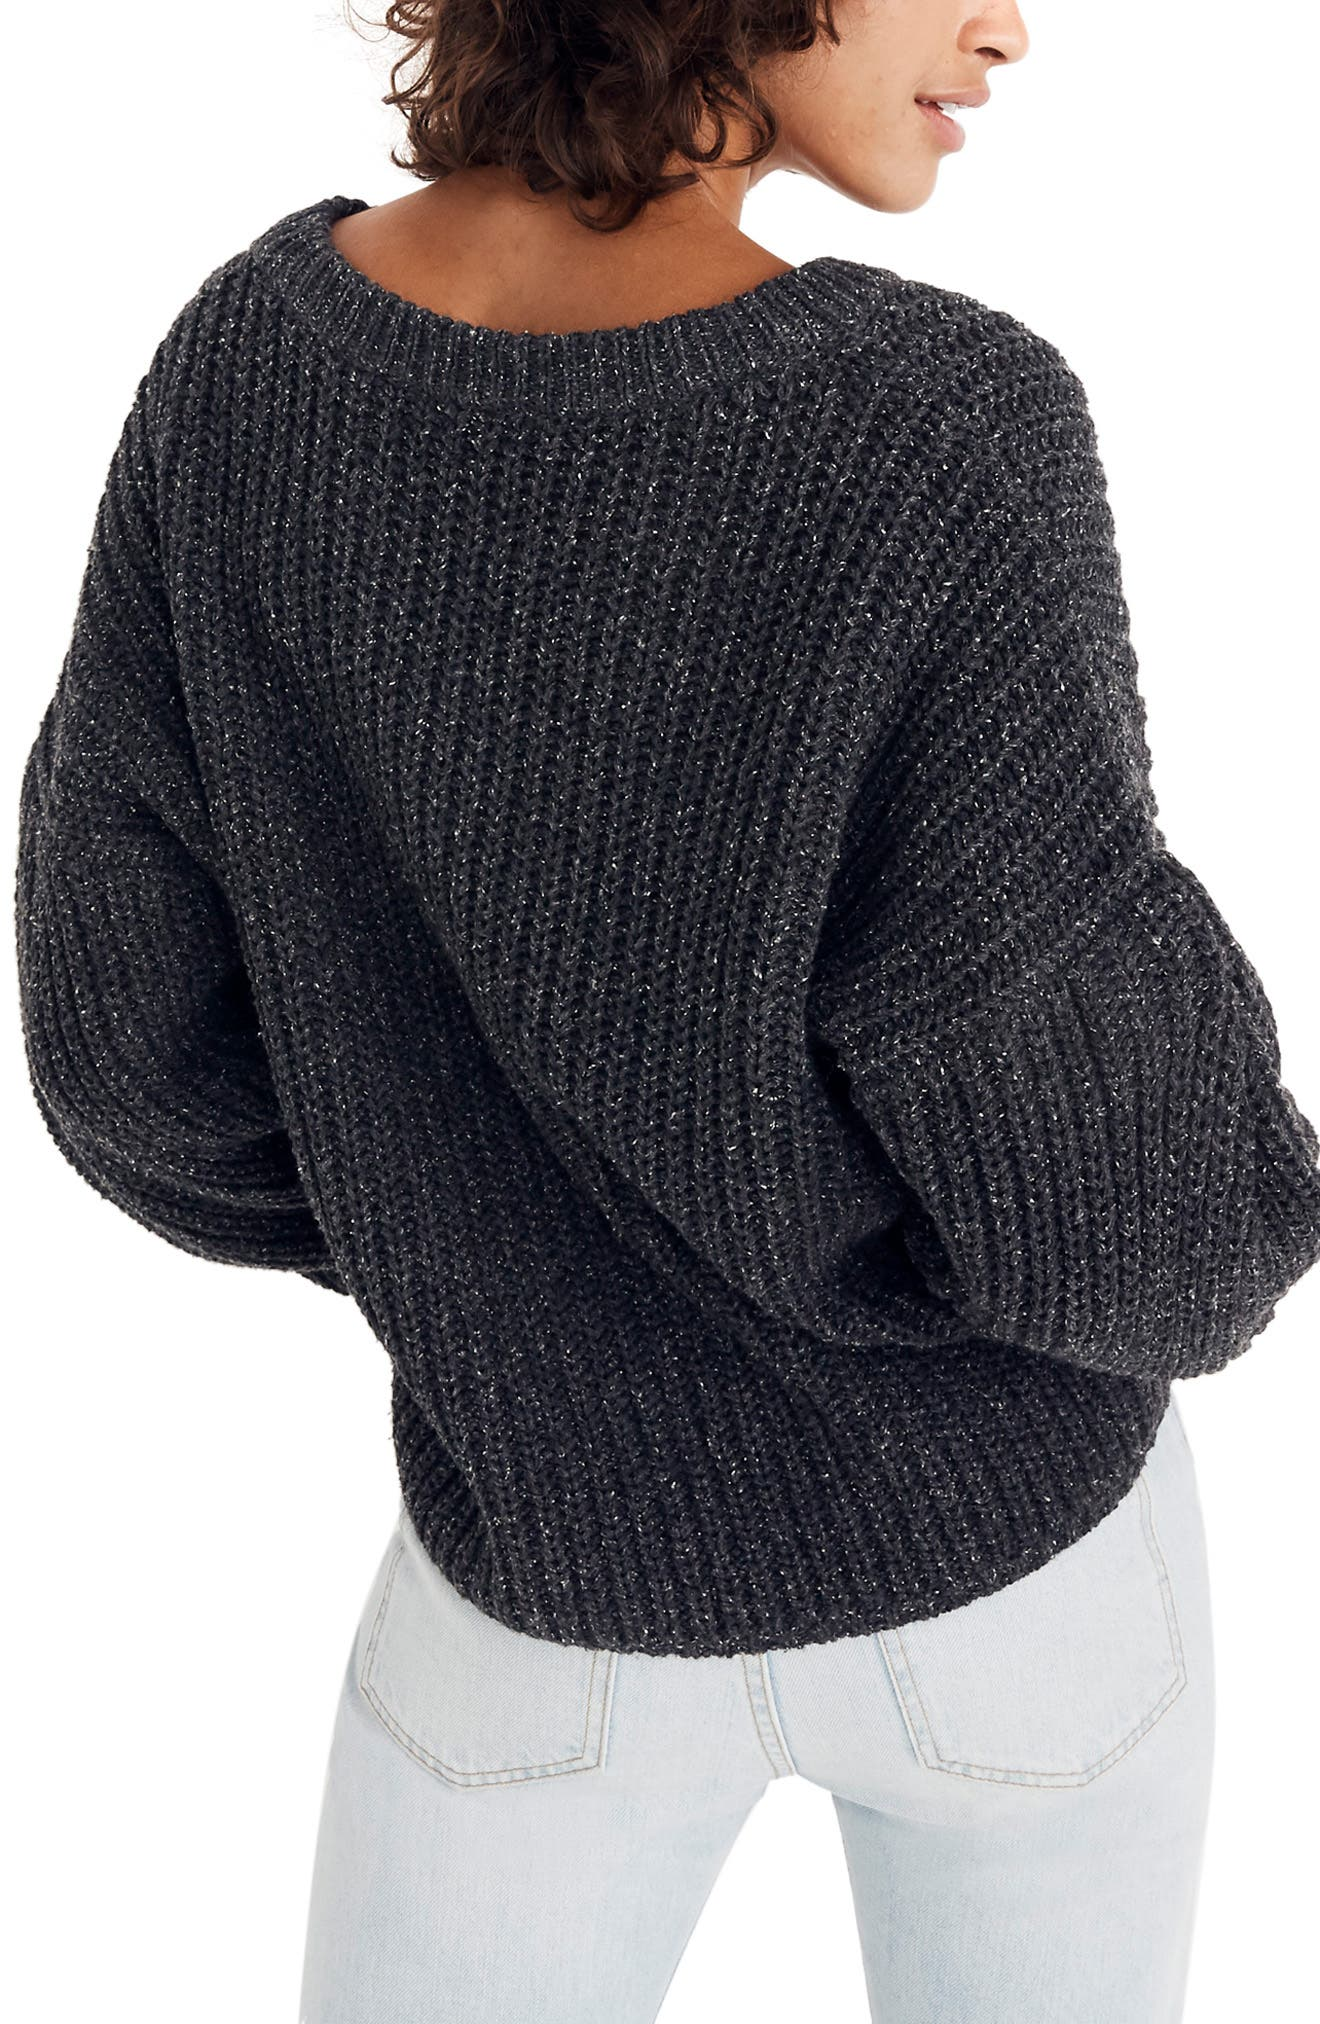 Pleat Sleeve Pullover Sweater,                             Alternate thumbnail 3, color,                             021